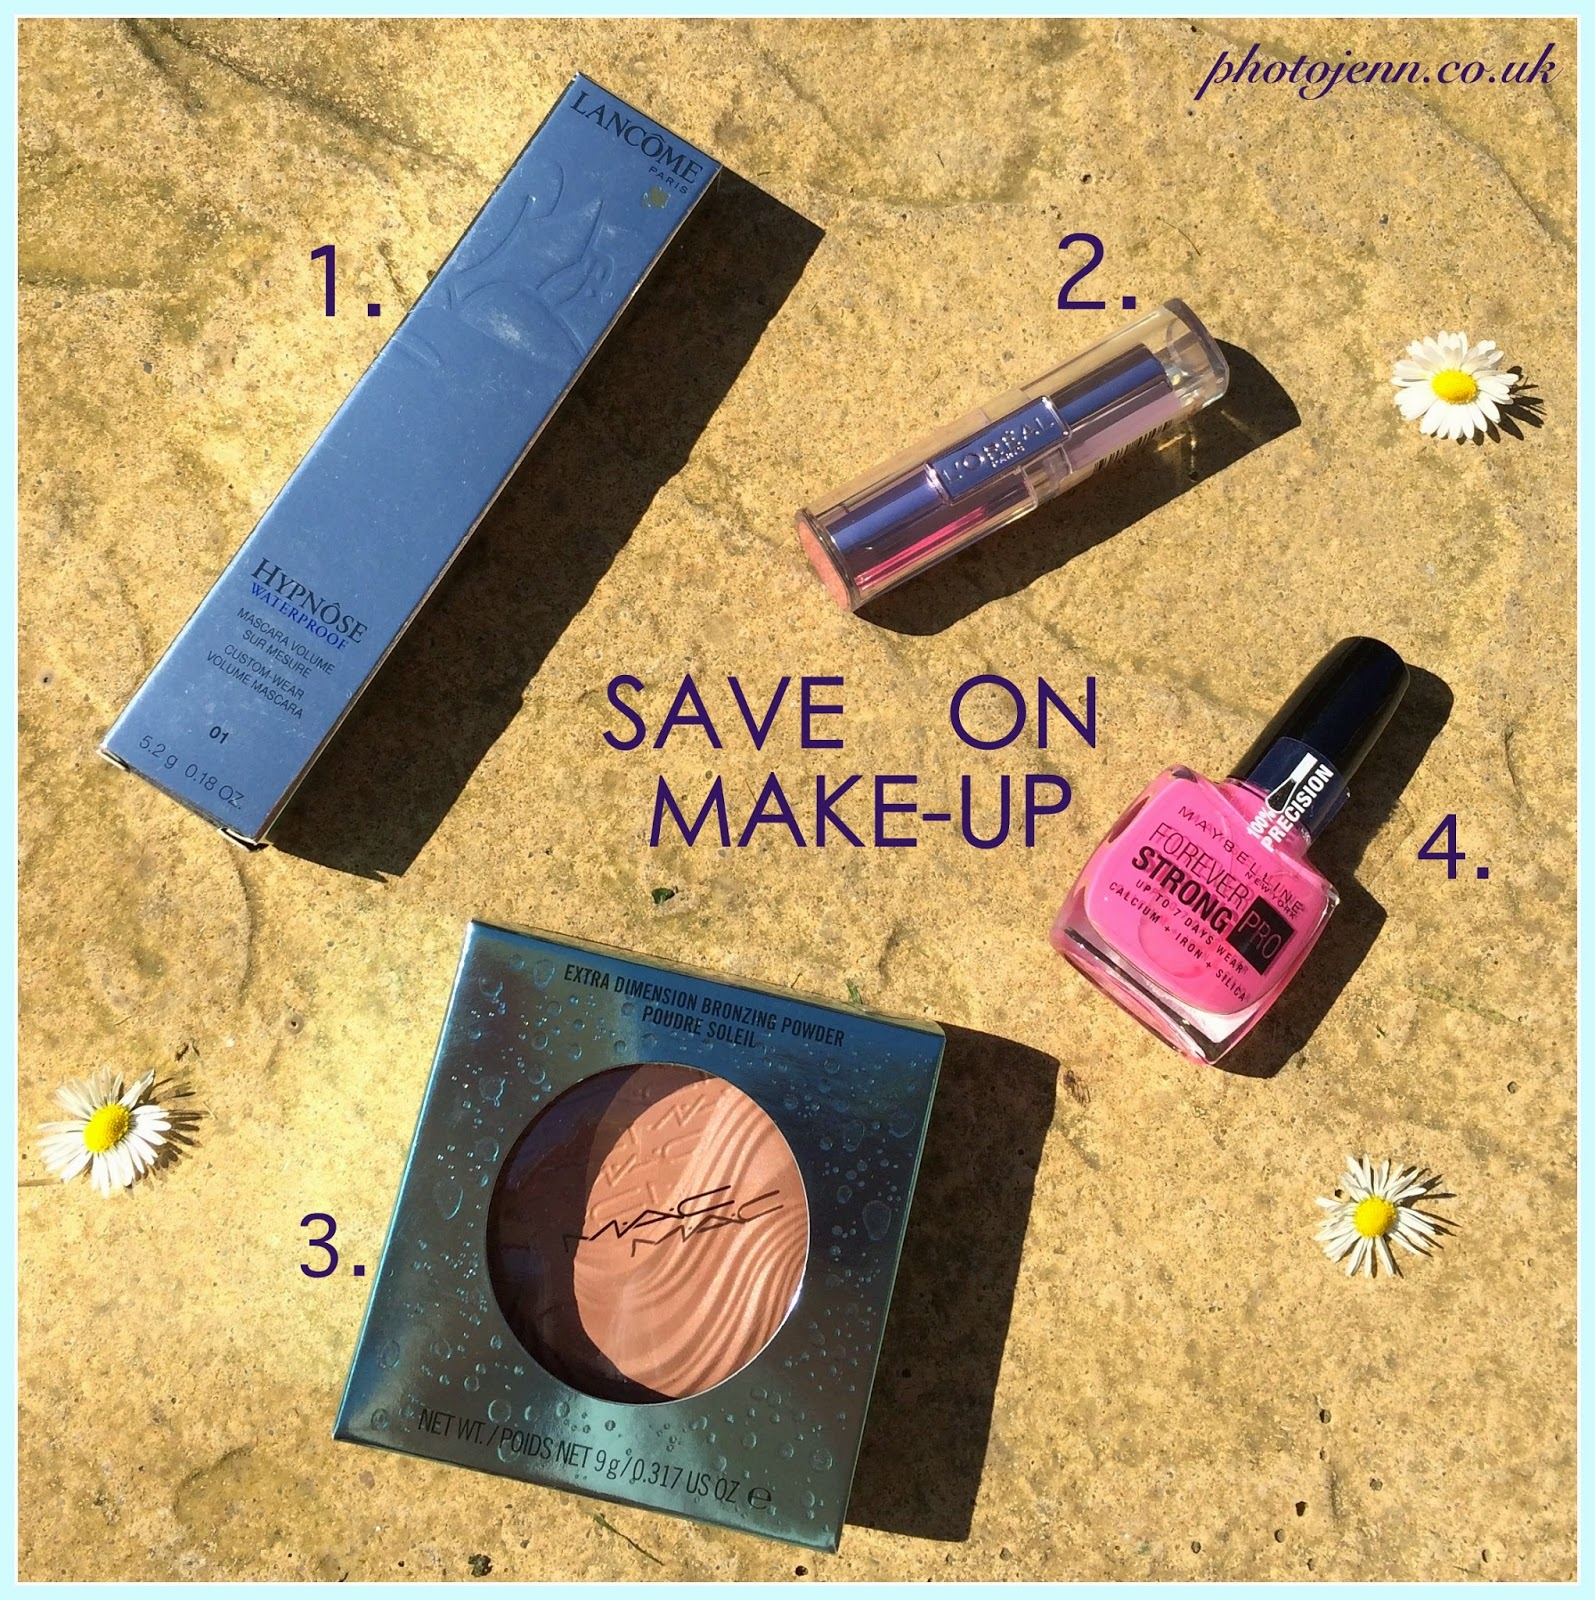 save-on-make-up-website-review-MAC-Lancome-Loreal-maybelline